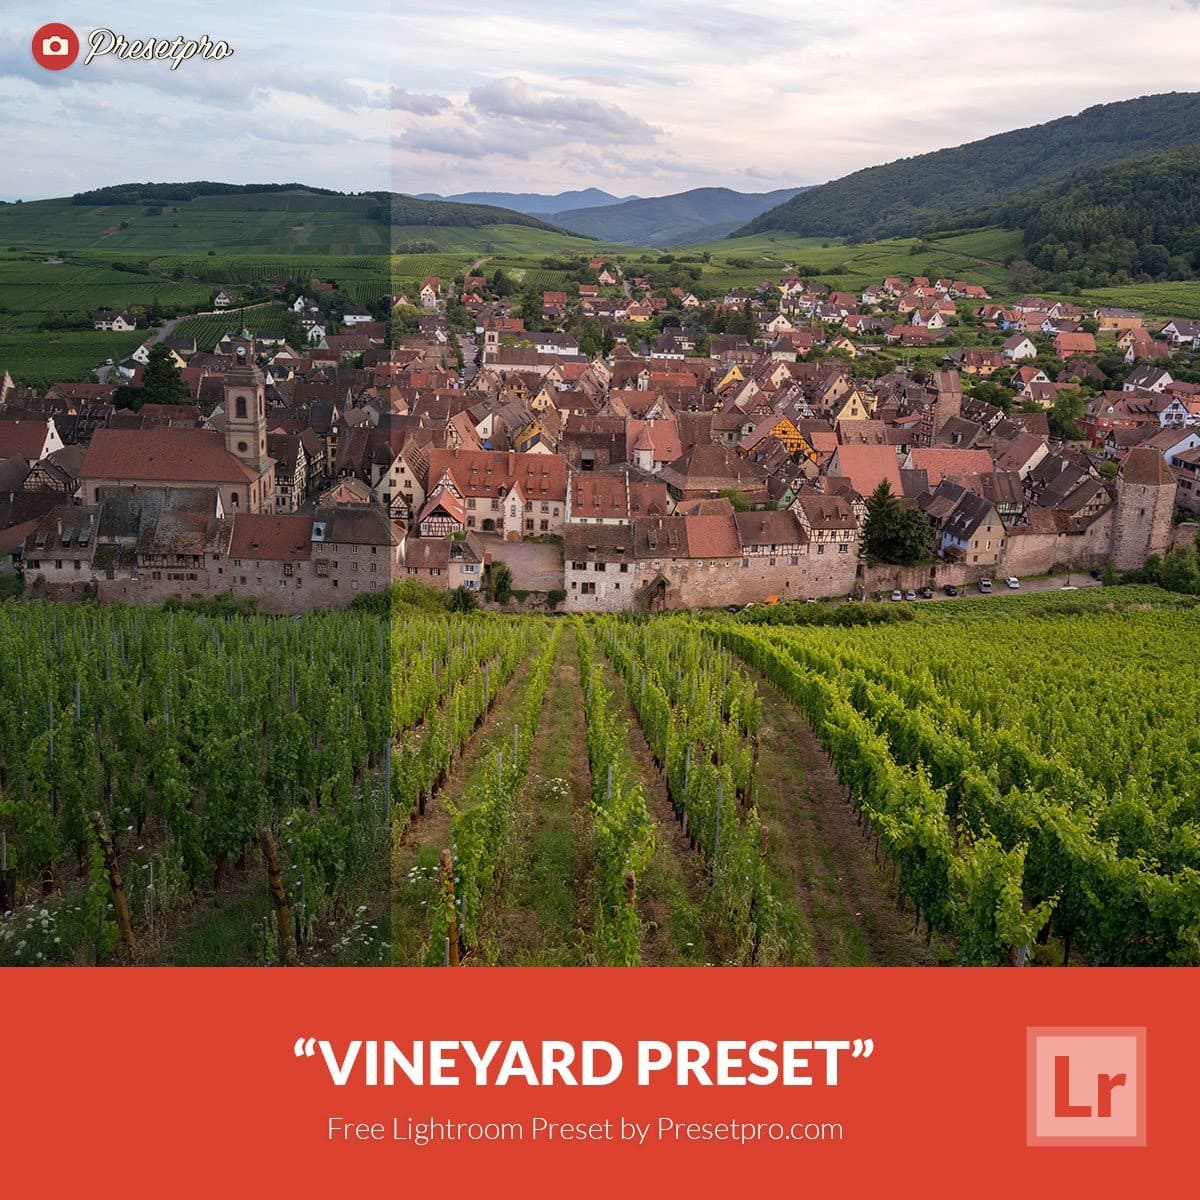 Free-Lightroom-Preset-Vineyard-Presetpro.com